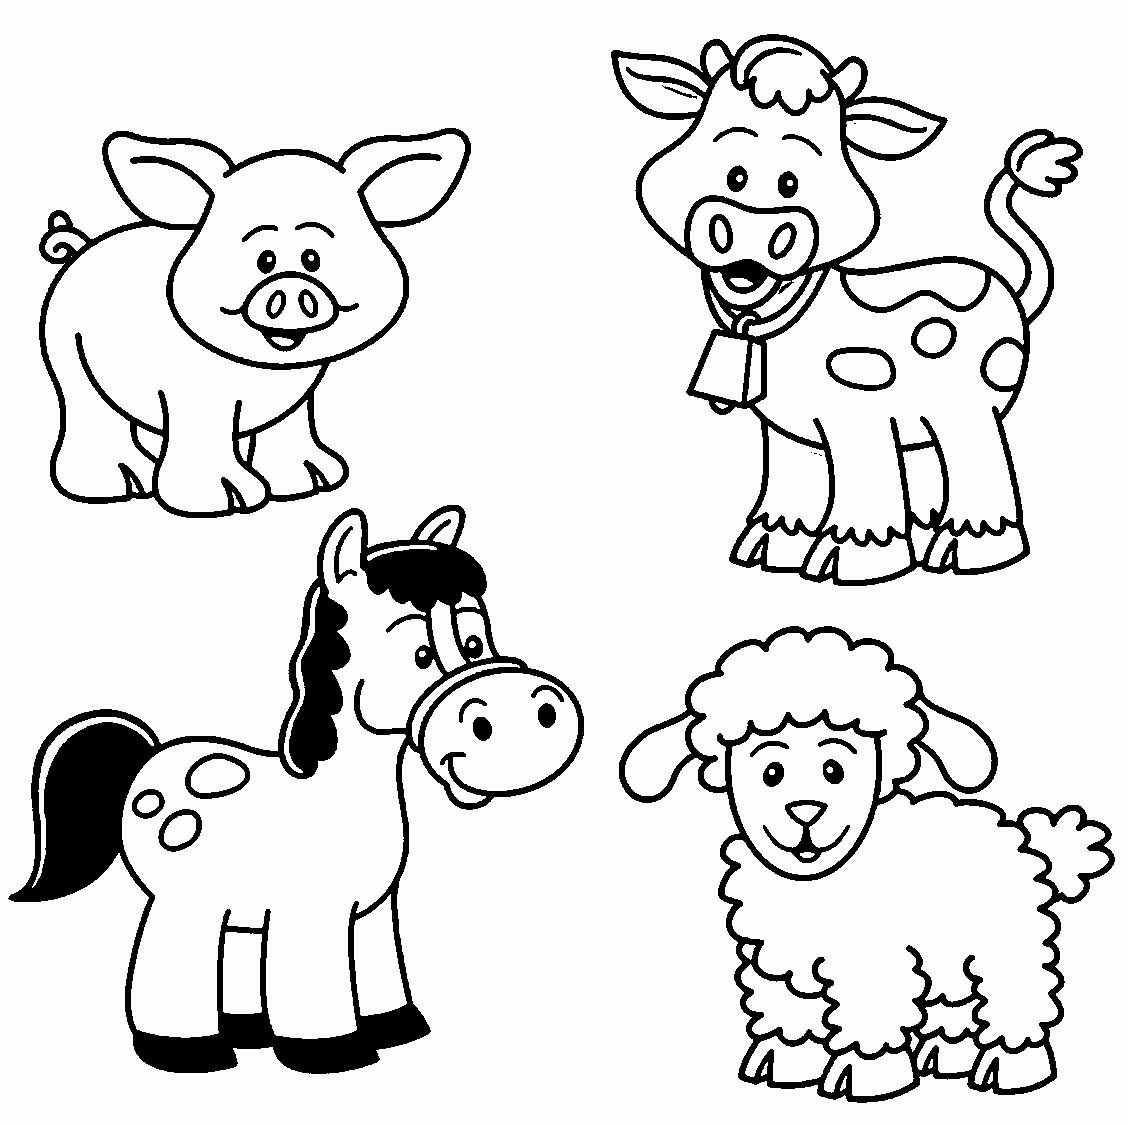 Baby Animal Coloring Pictures Inspirational Pin On Colorings Zoo Animal Coloring Pages Farm Animal Coloring Pages Animal Coloring Books